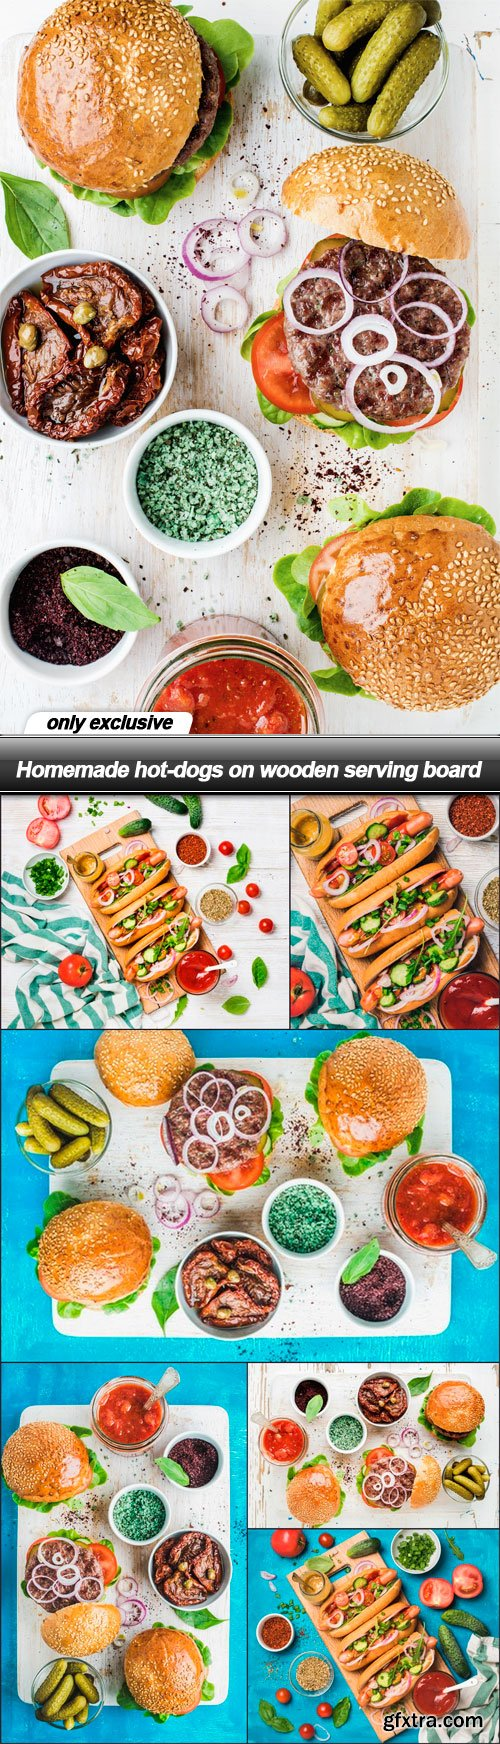 Homemade hot-dogs on wooden serving board - 7 UHQ JPEG